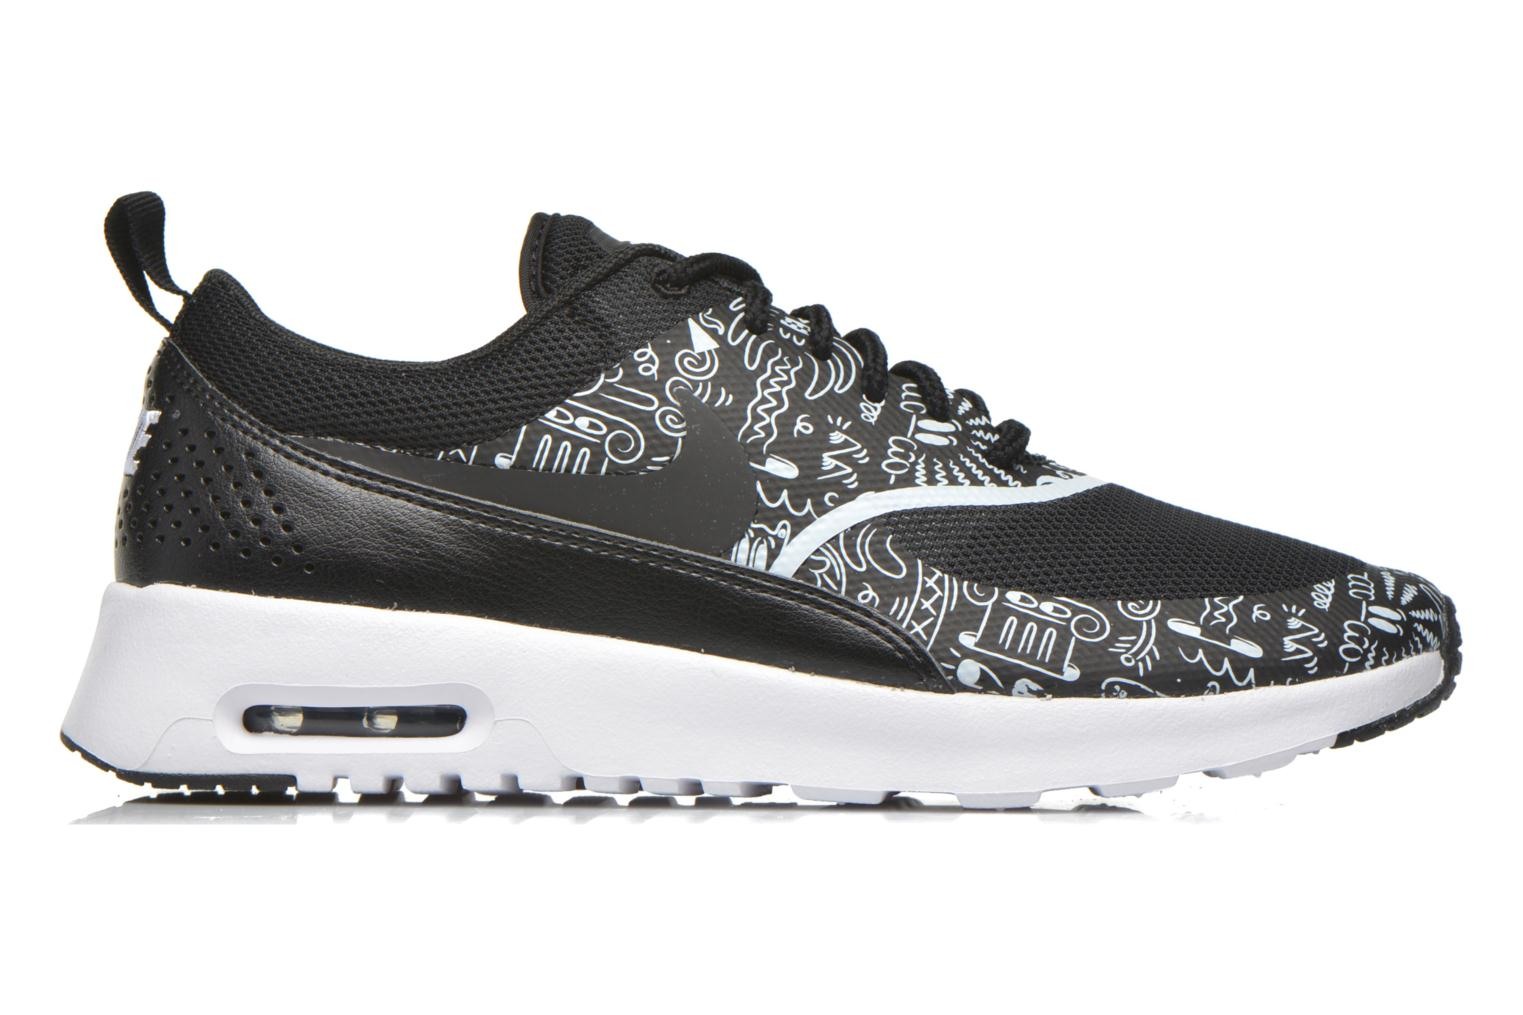 Wmns Nike Air Max Thea Print Black/white